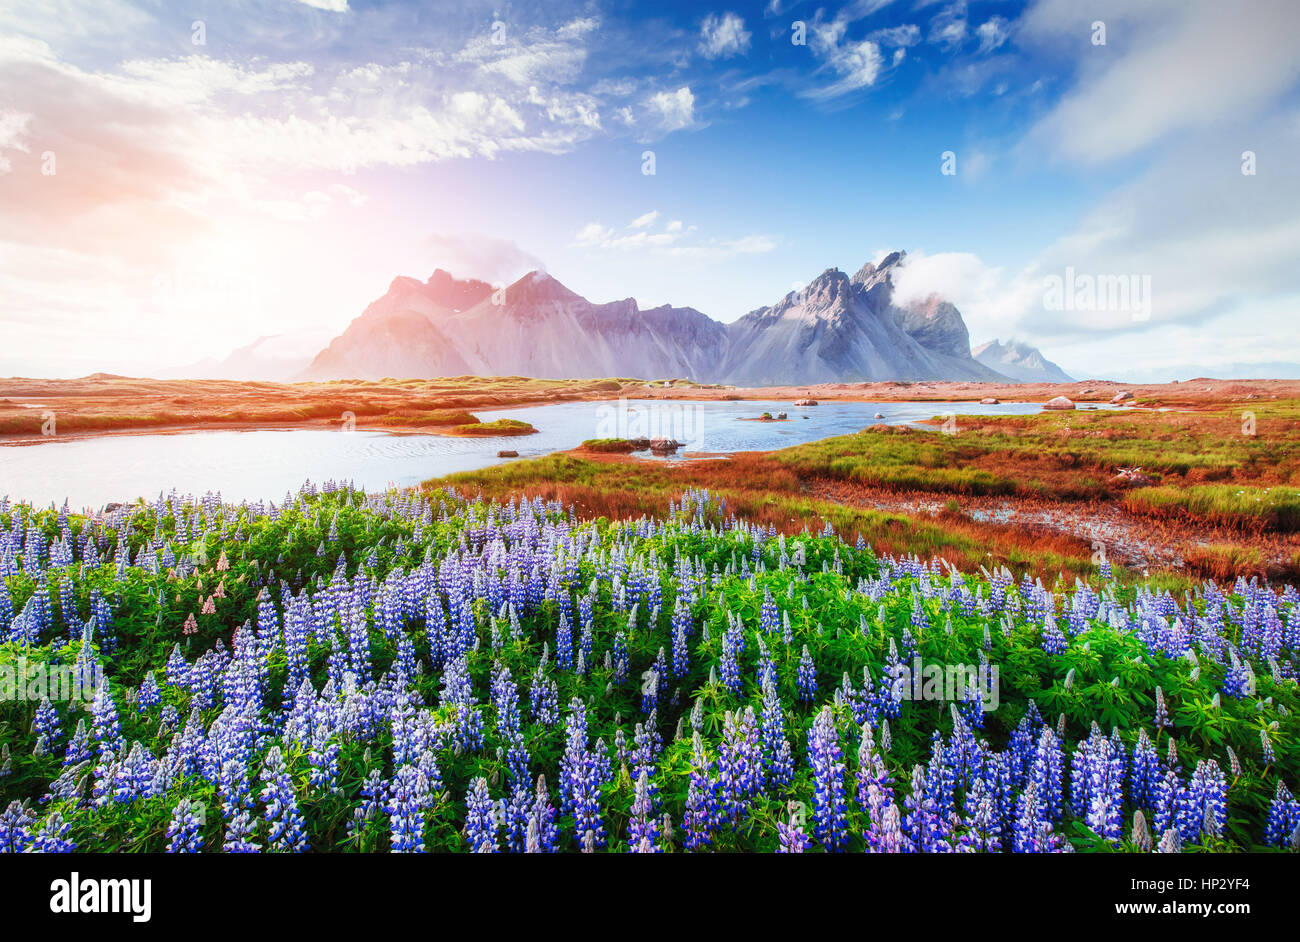 The picturesque landscapes forests and mountains of Iceland. - Stock Image